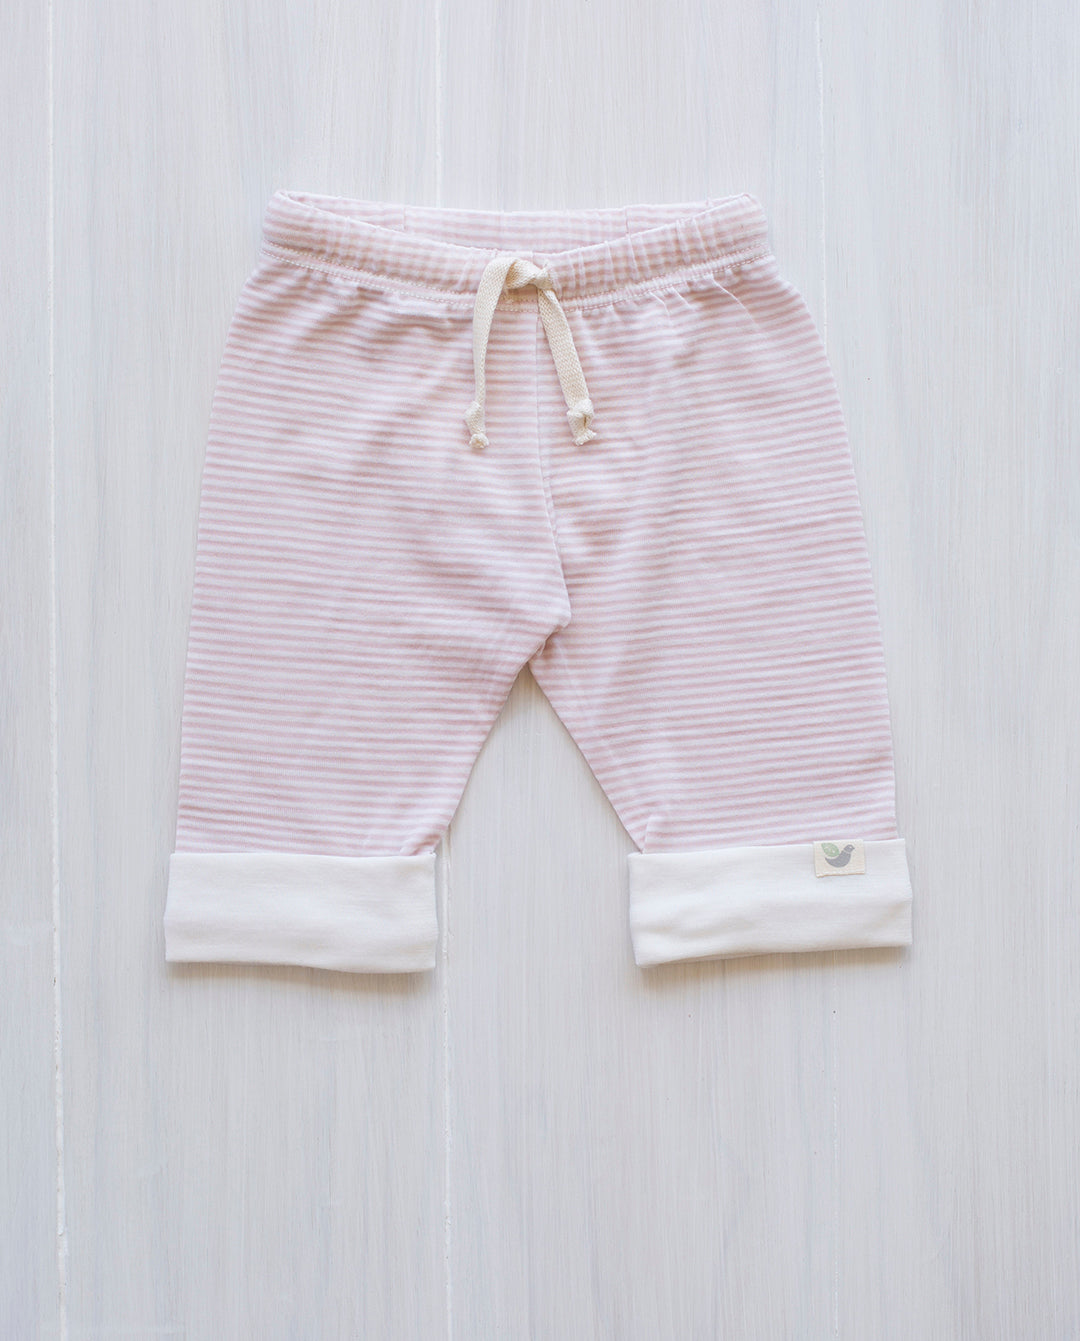 dusty rose stripe drawstring pants for babies